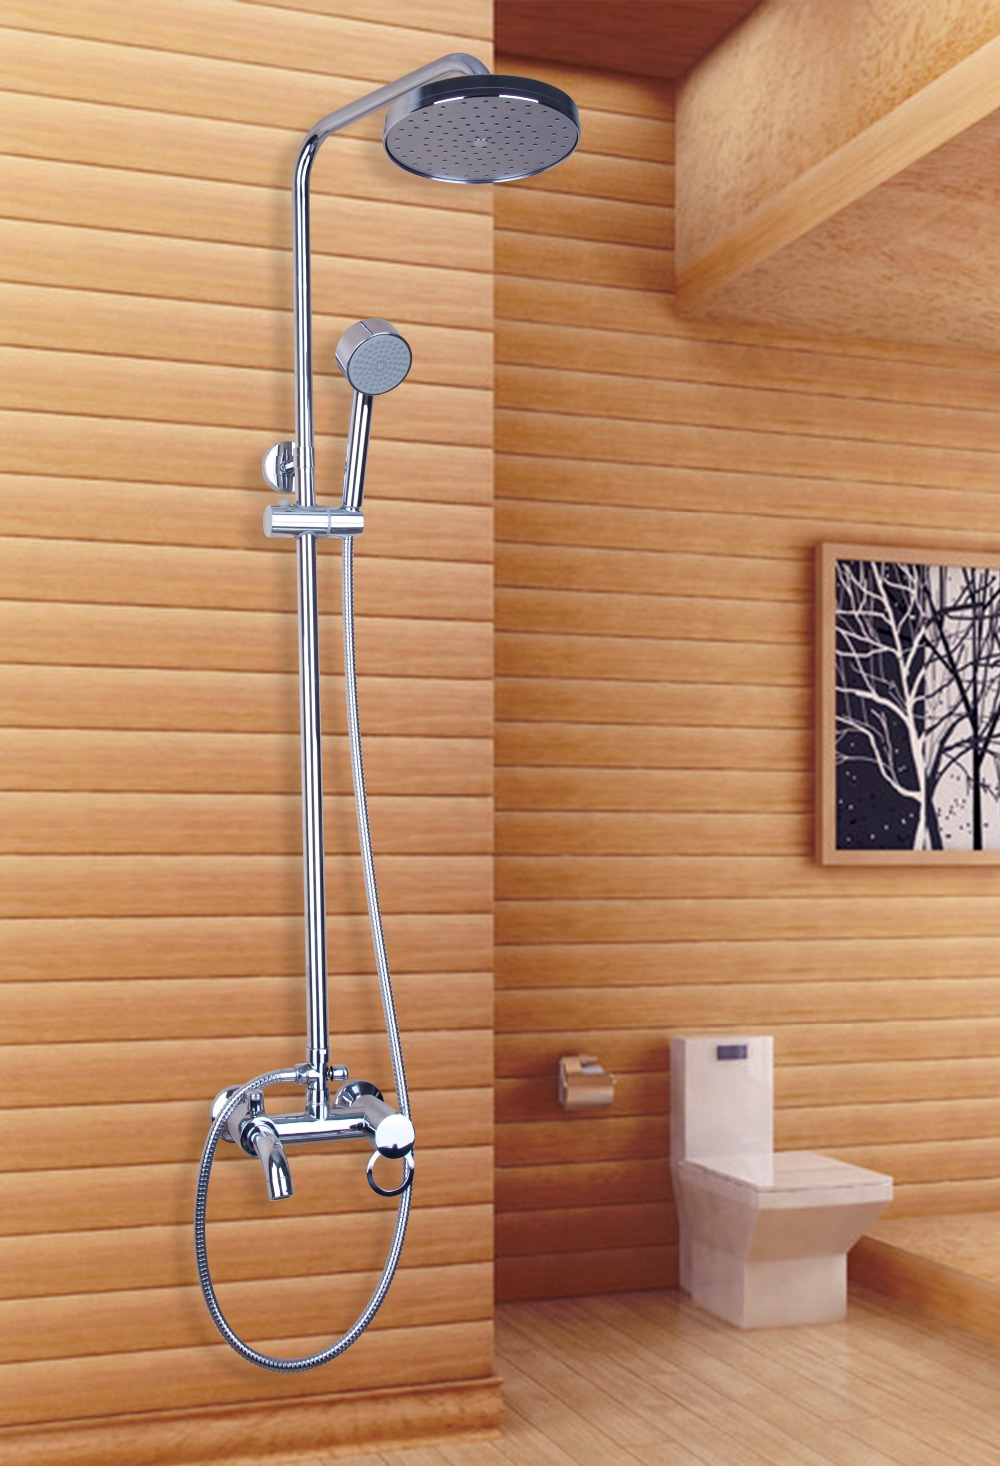 Bathroom showers head - New 8 Modern Bathroom Shower Set Shower Head With Adjustable Height Hand Shower Set Faucets